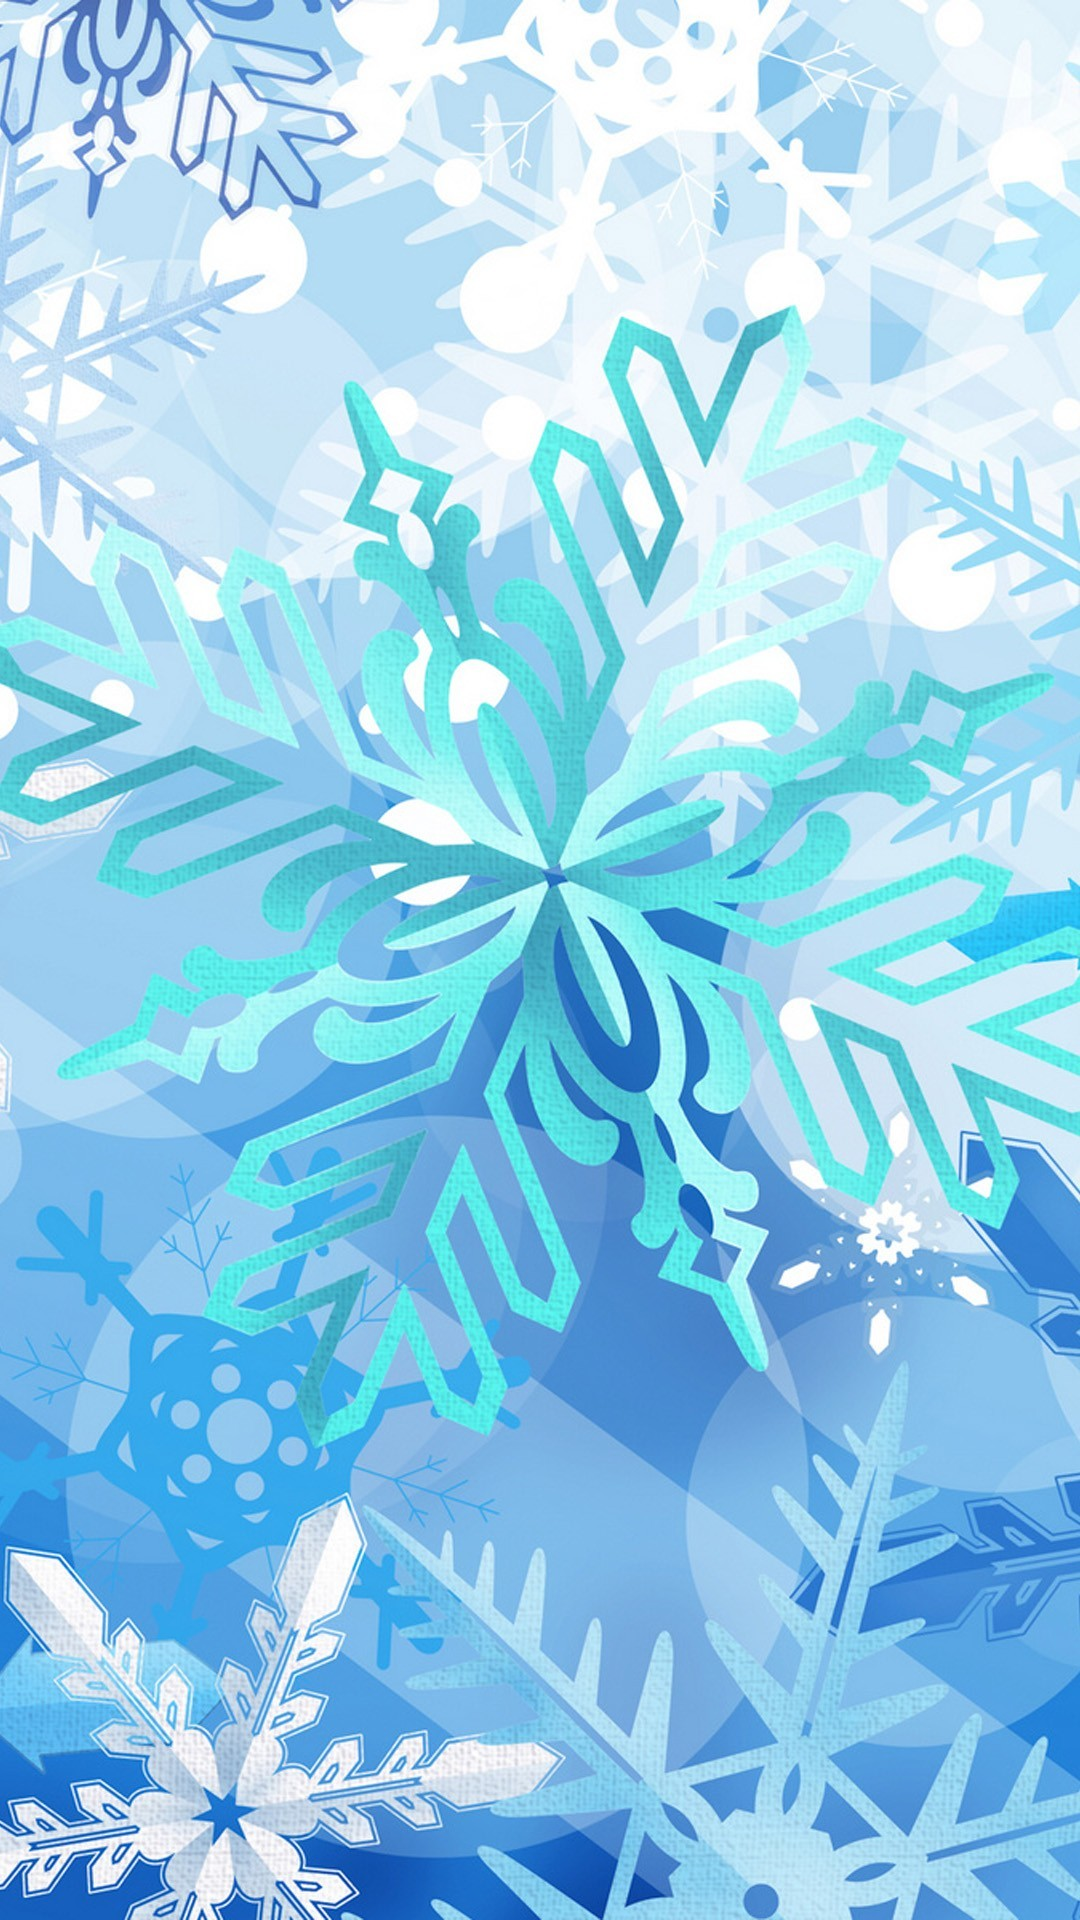 Cell phone backgrounds · snowflakes Christmas iPhone 6 plus wallpaper